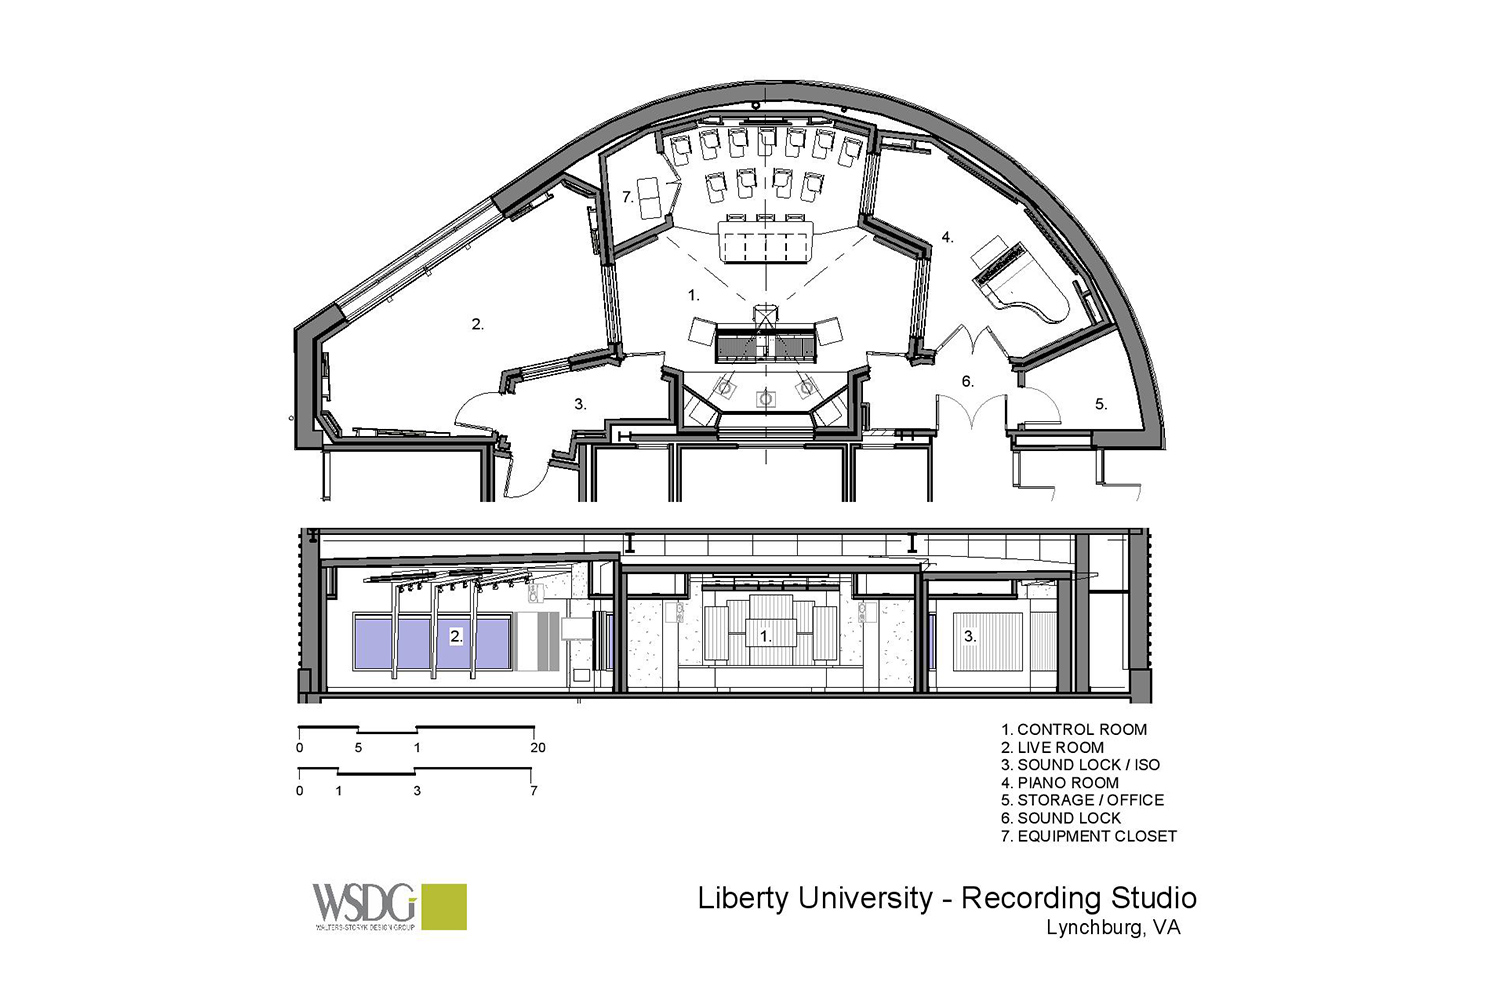 WSDG has designed a state-of-the art recording /teaching studio for the expanding campus of Liberty University, America's largest private, non-profit Christian university. Presentation Drawing/Plans 1.